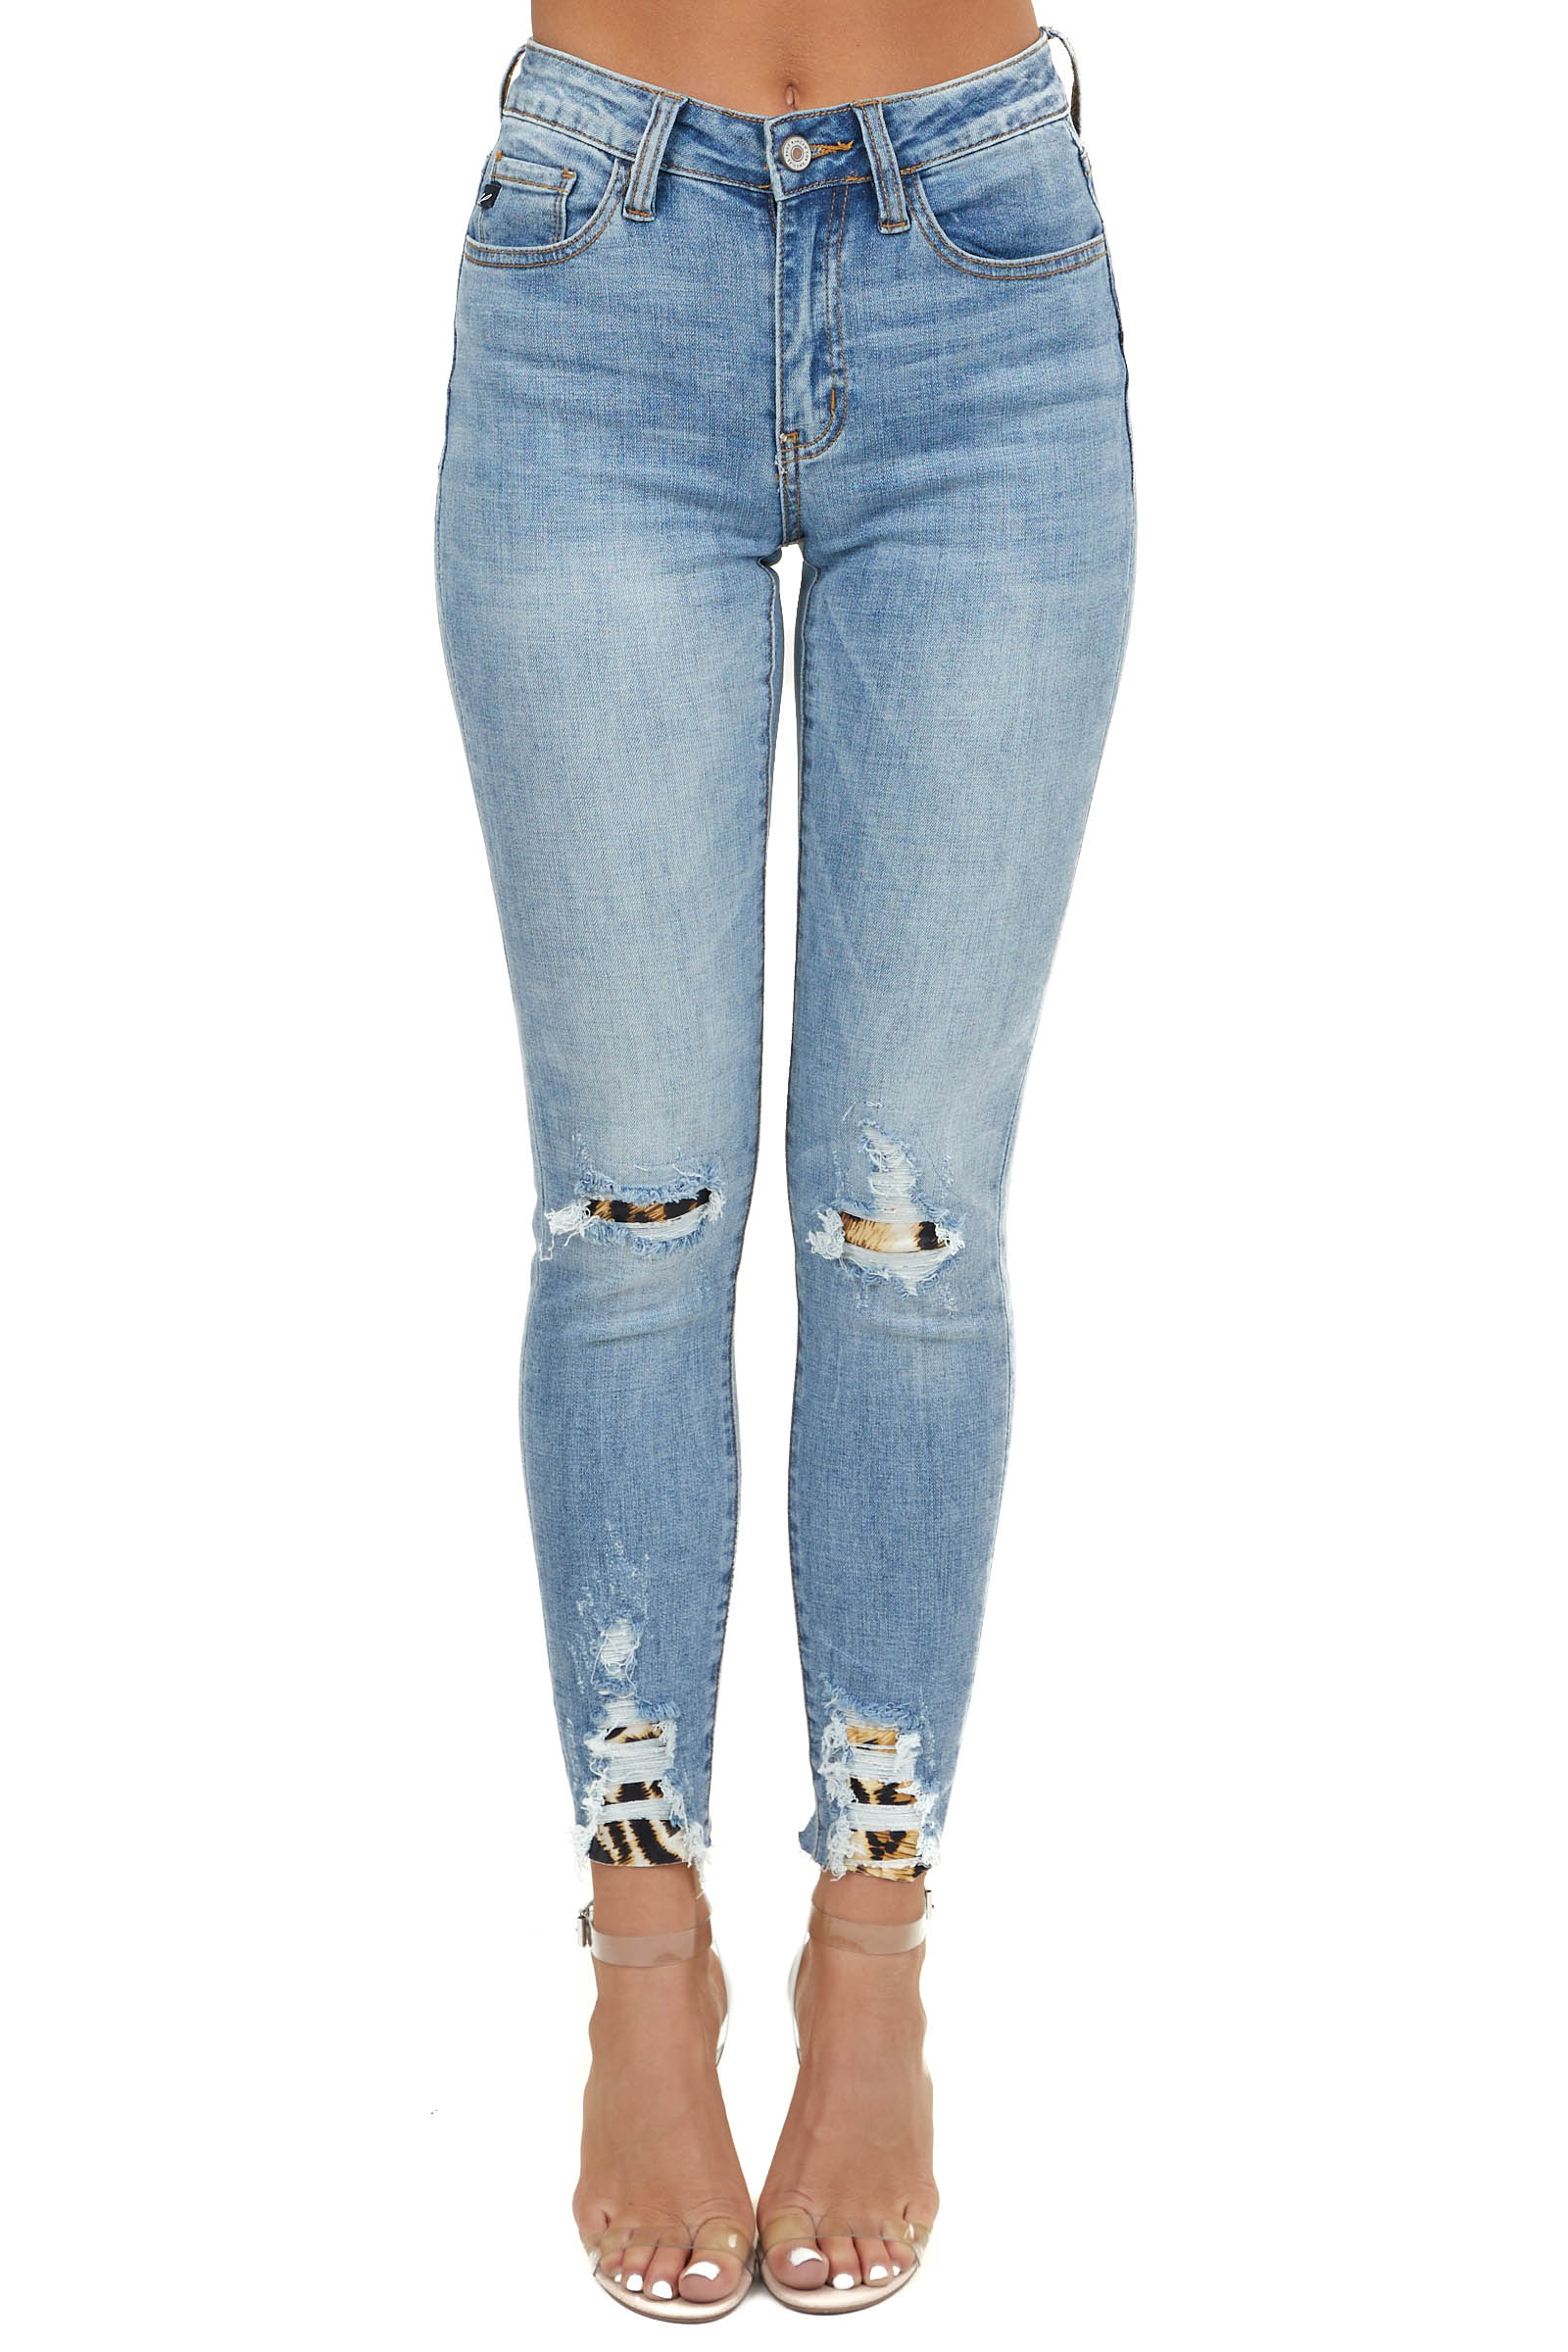 Midwash Denim Skinny Jeans with Leopard Patches and Raw Hems